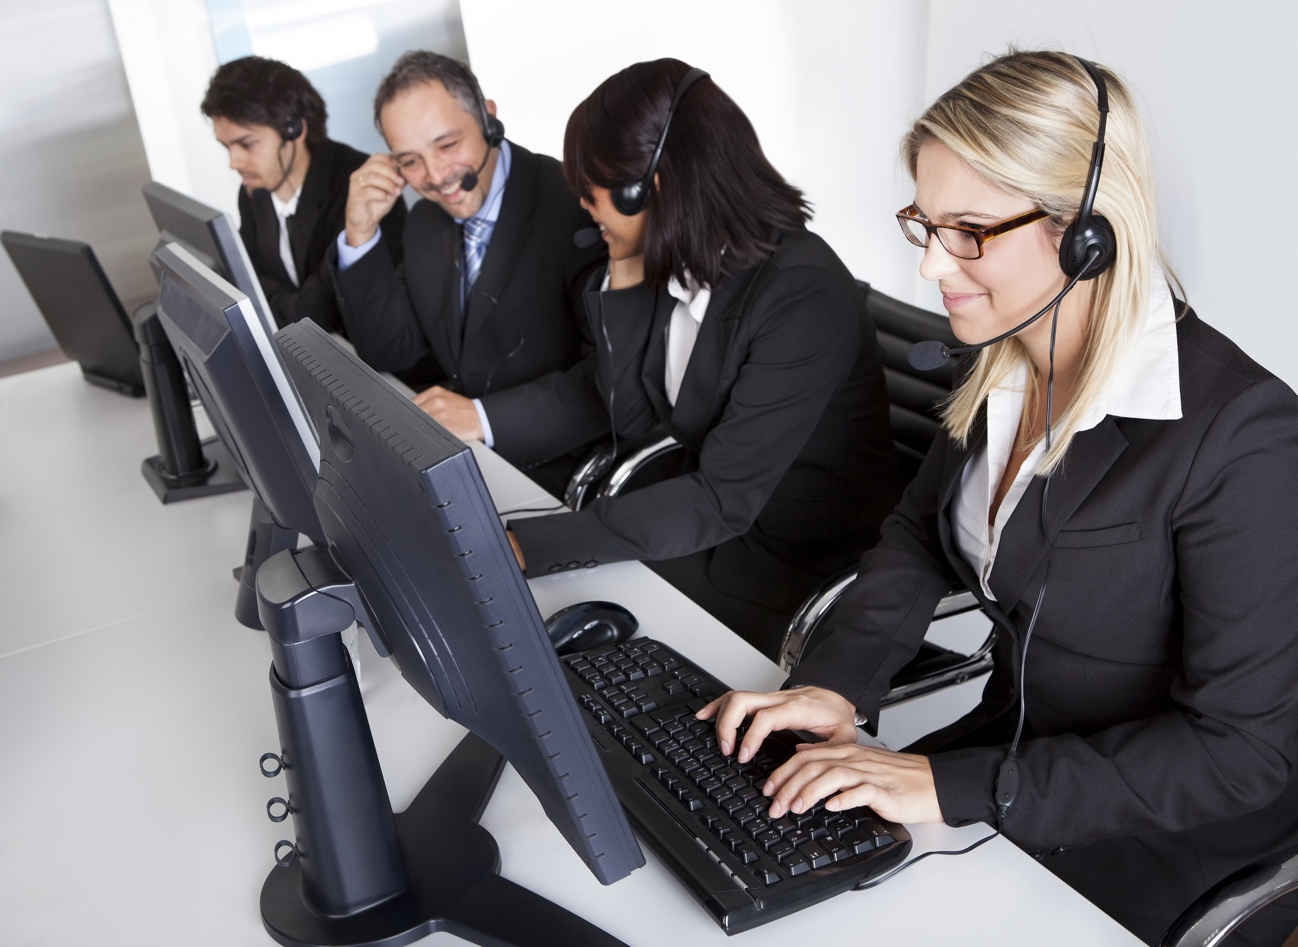 Contact Centers 101